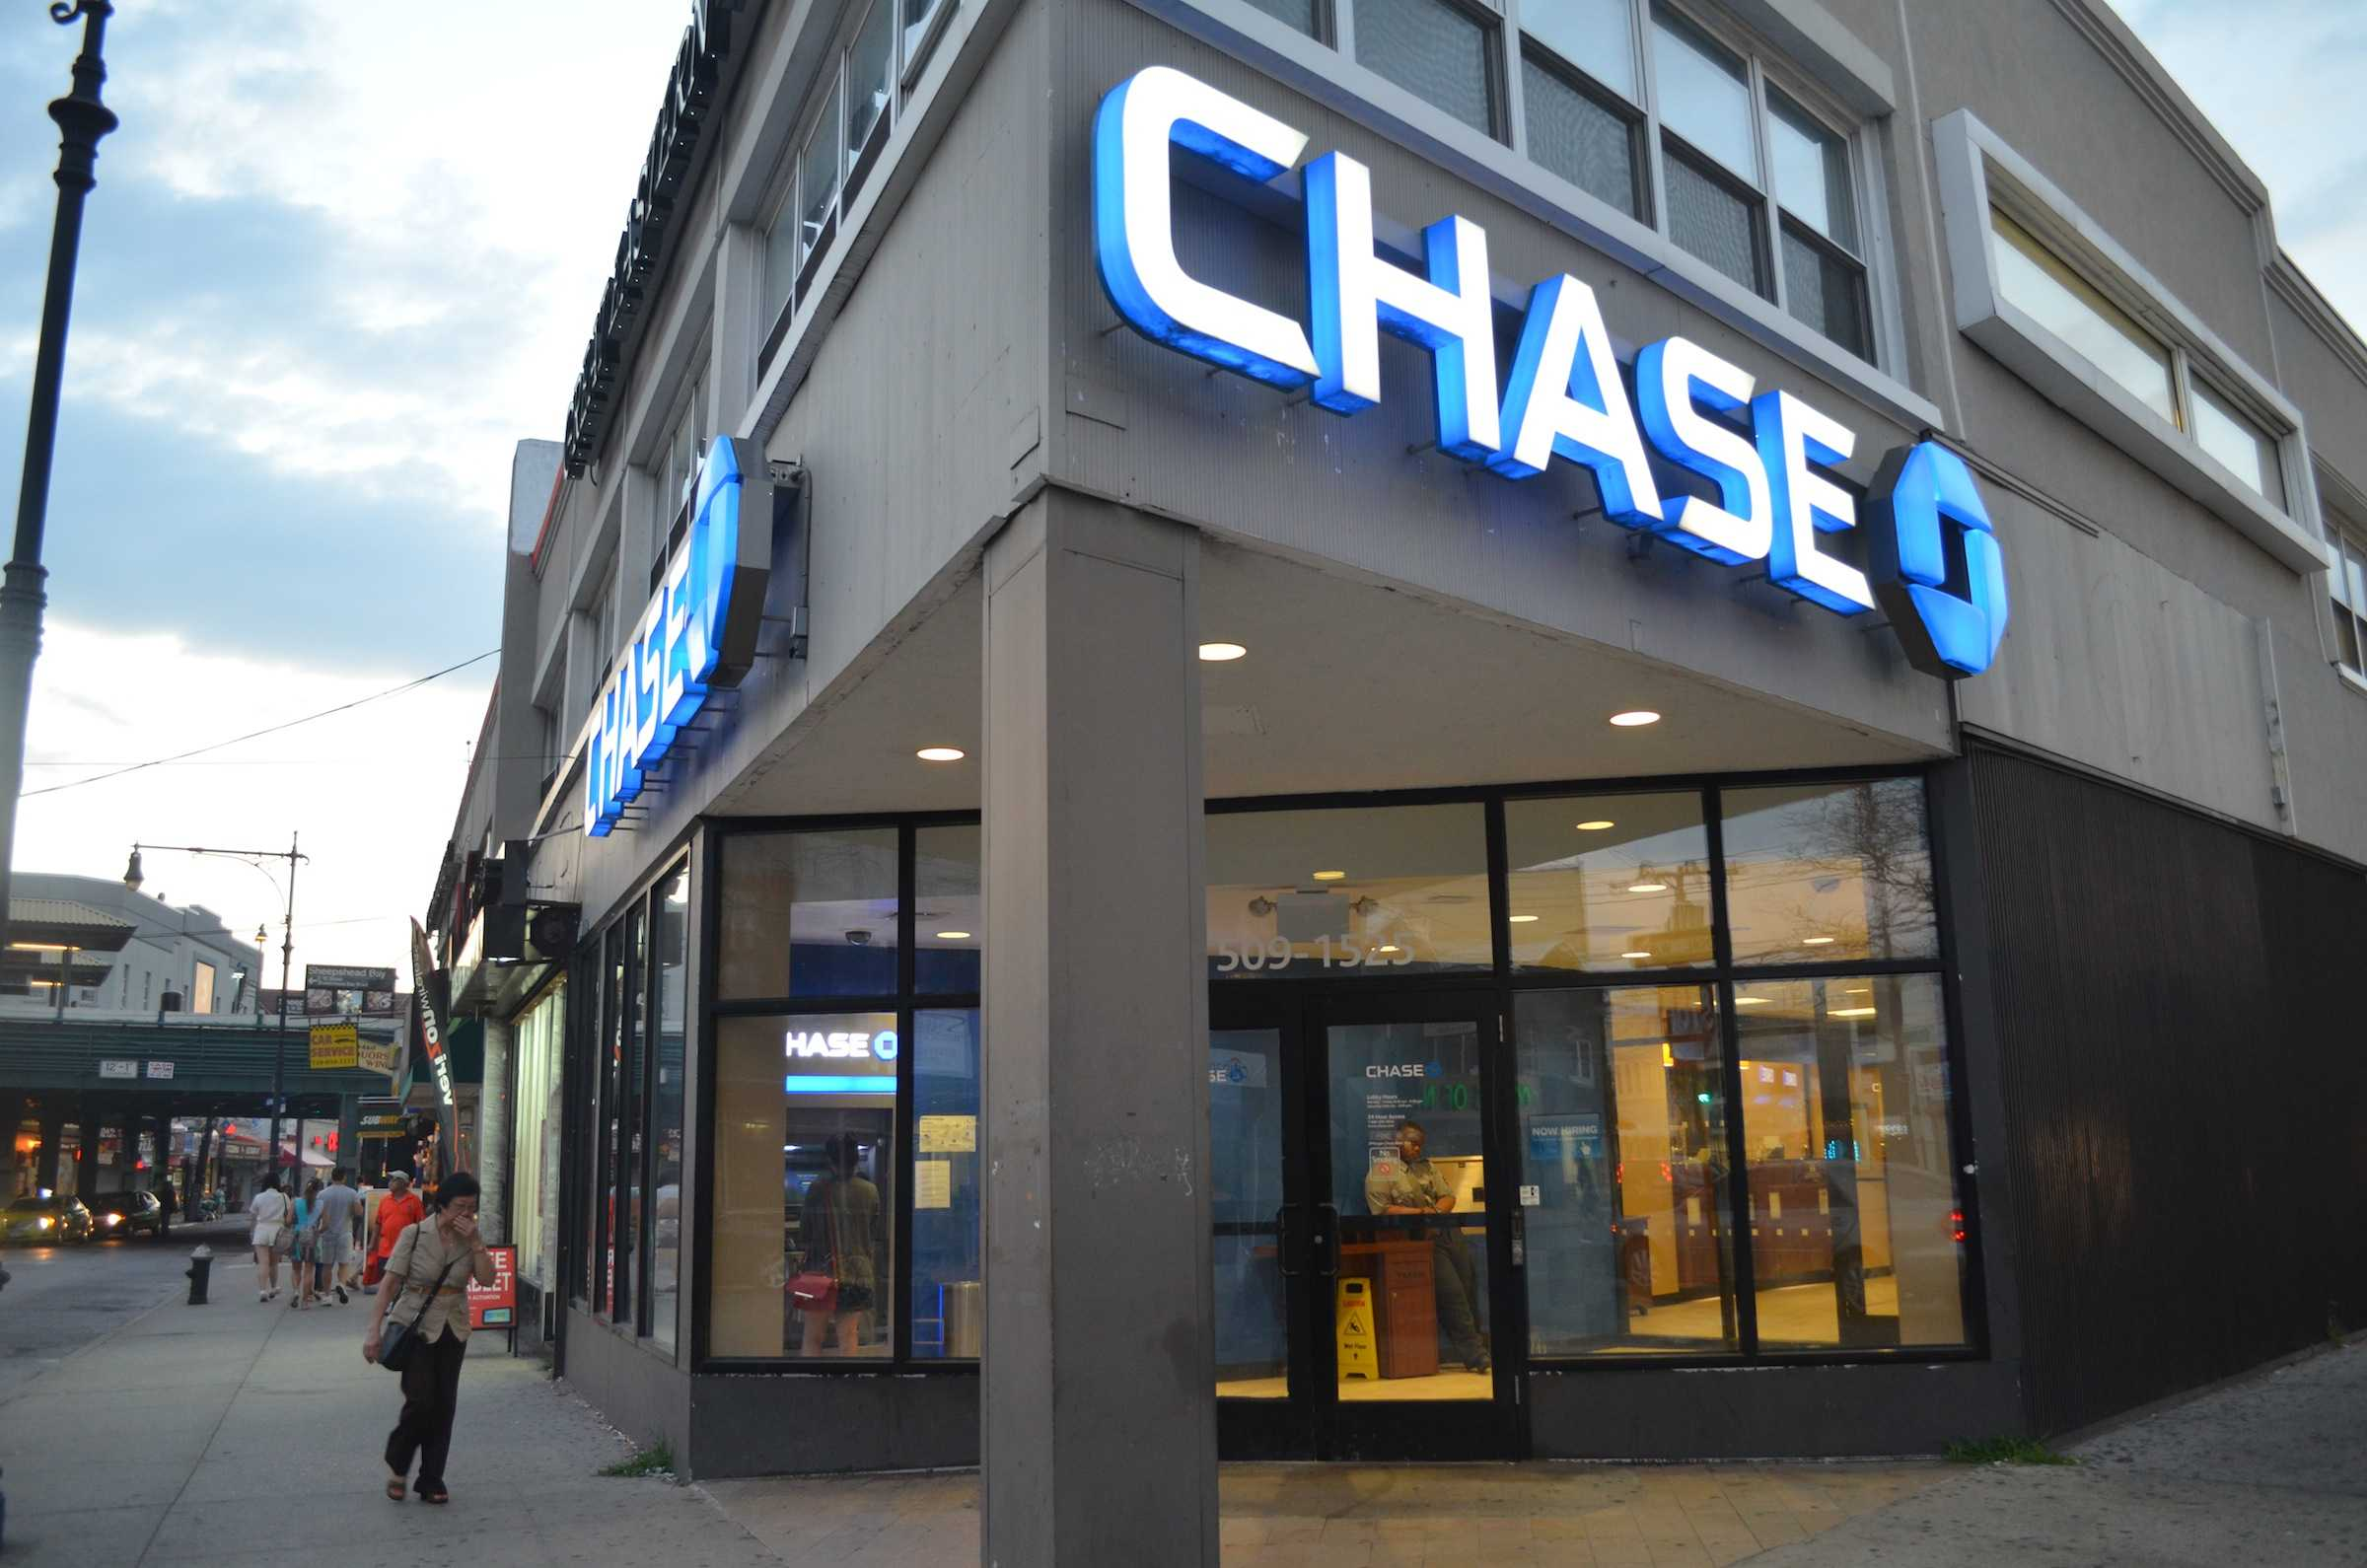 J.P. Morgan Chase Bank, N.A., doing business as Chase Bank, is a national bank headquartered in Manhattan, New York City, that constitutes the consumer and commercial banking subsidiary of the U.S. multinational banking and financial services holding company, JPMorgan Chase & Co.